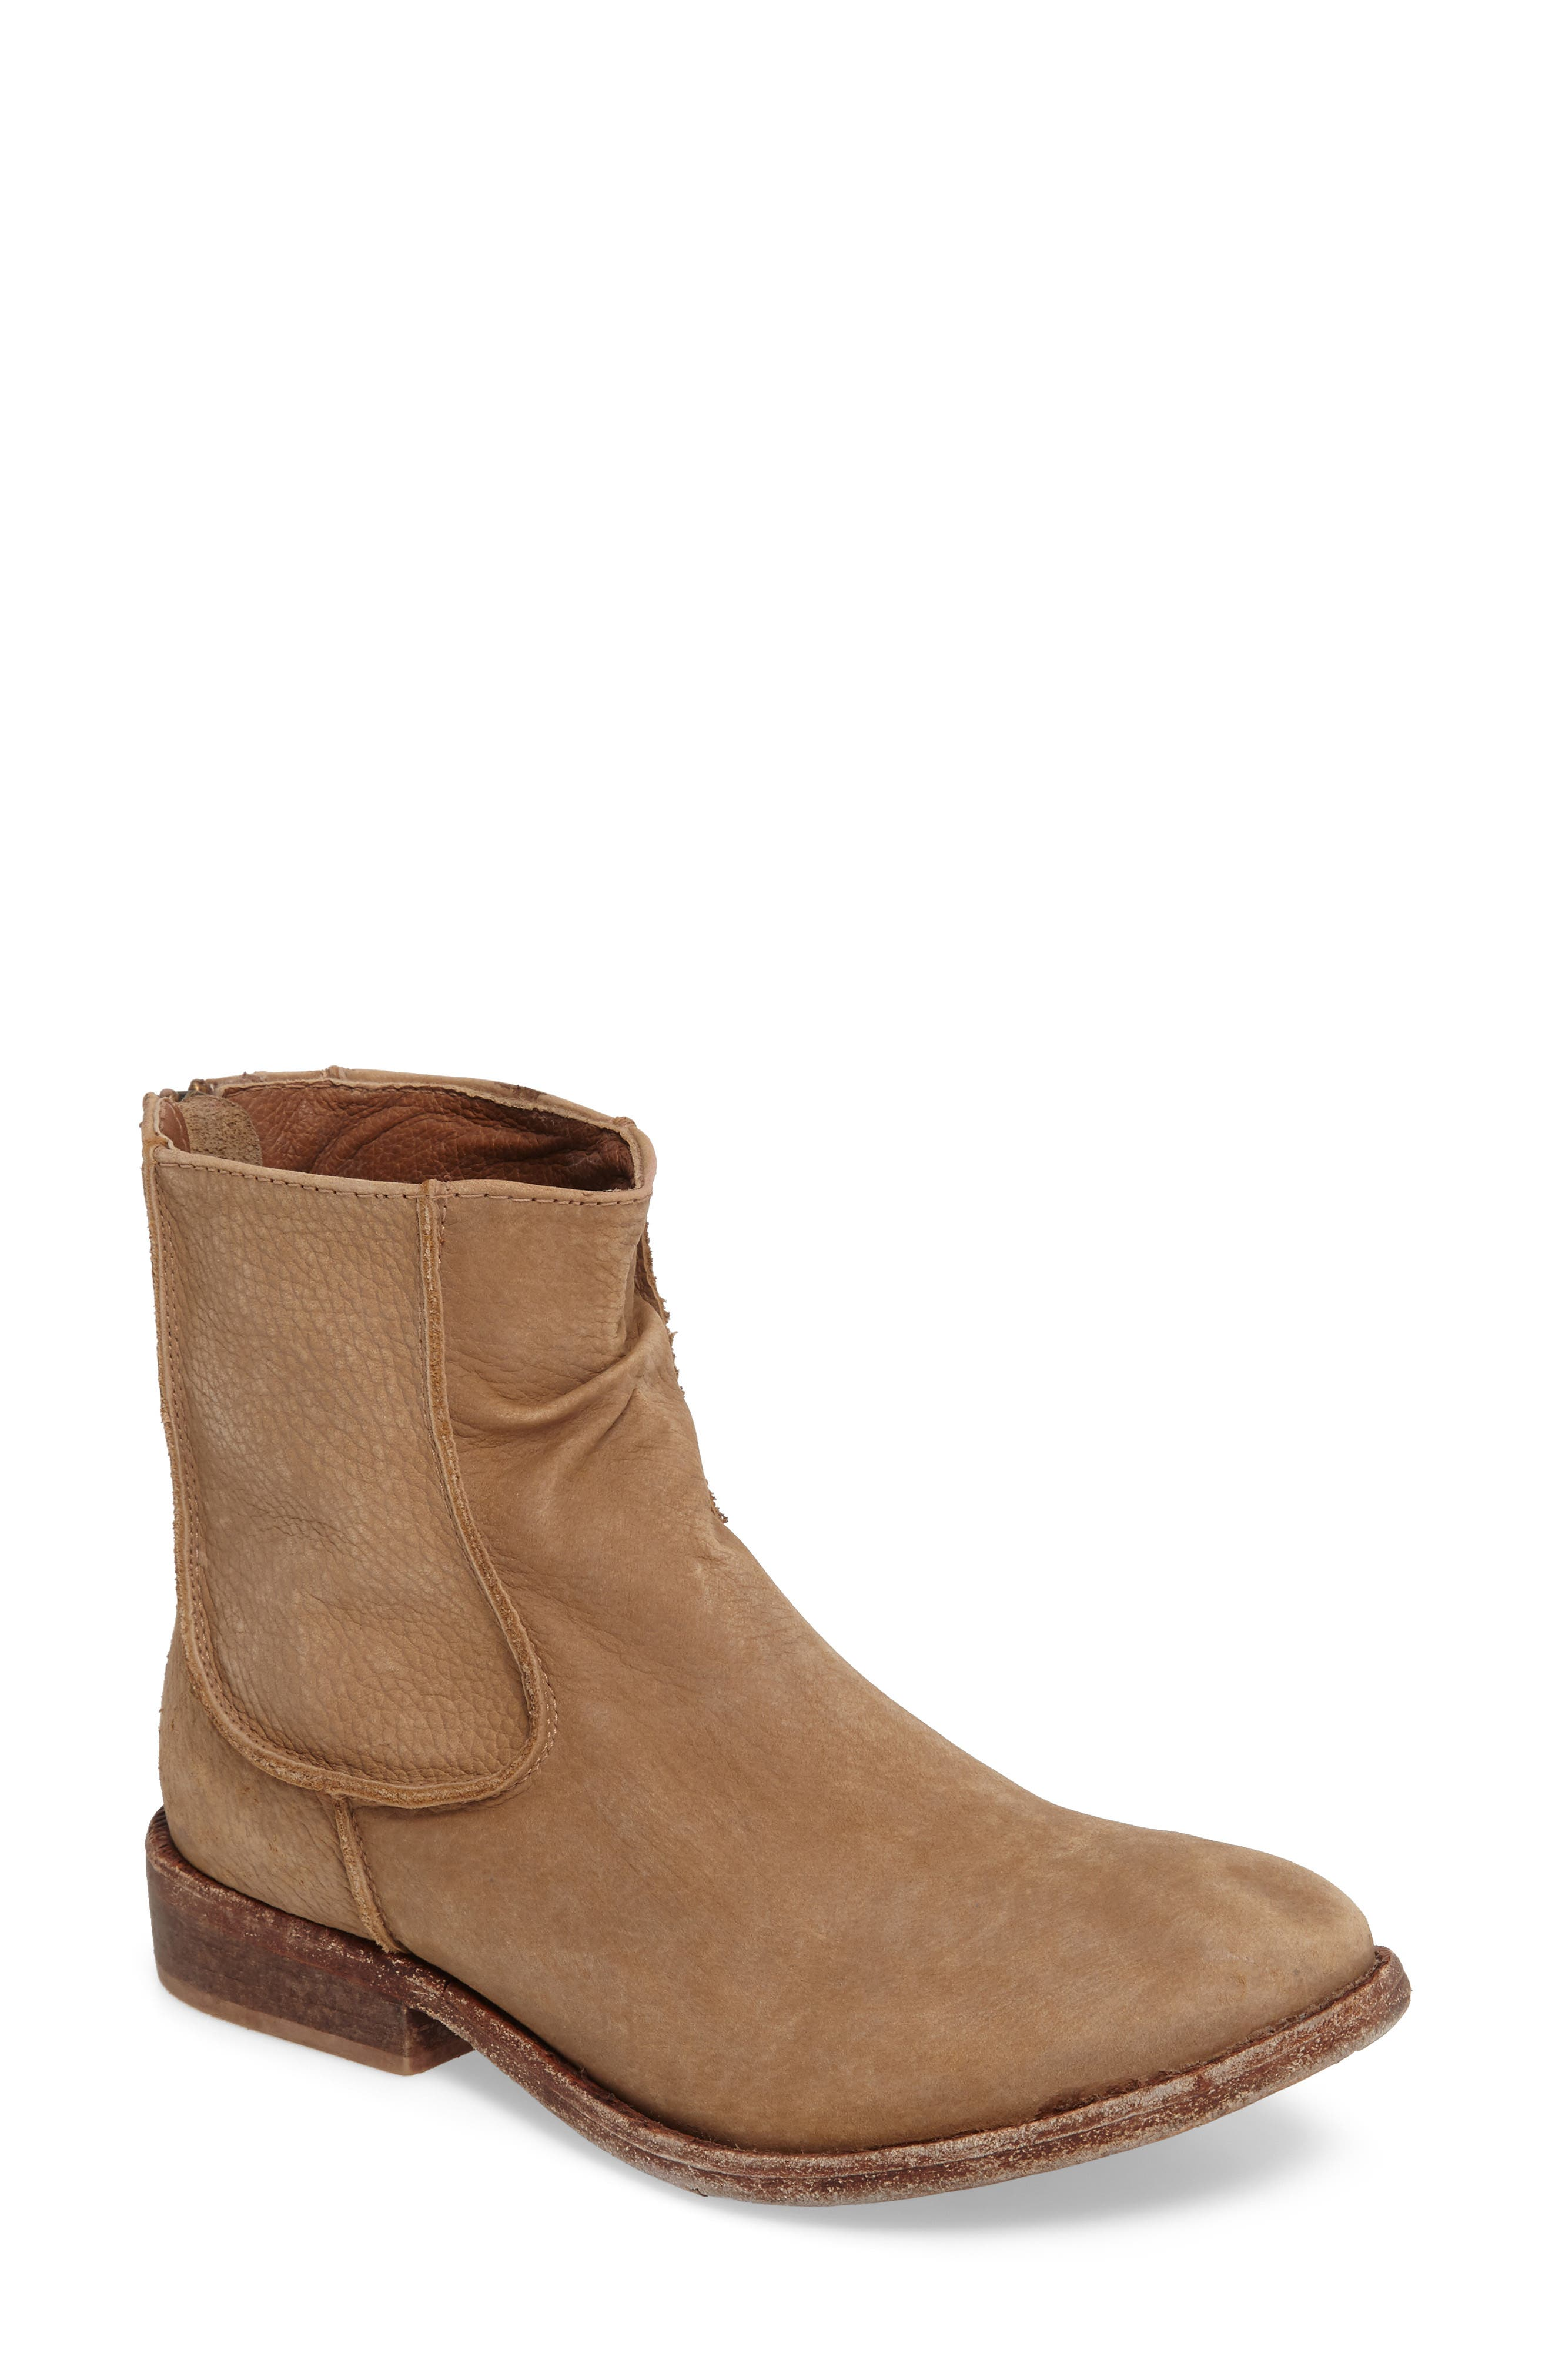 'Gerald' Distressed Bootie,                             Main thumbnail 1, color,                             Natural Leather